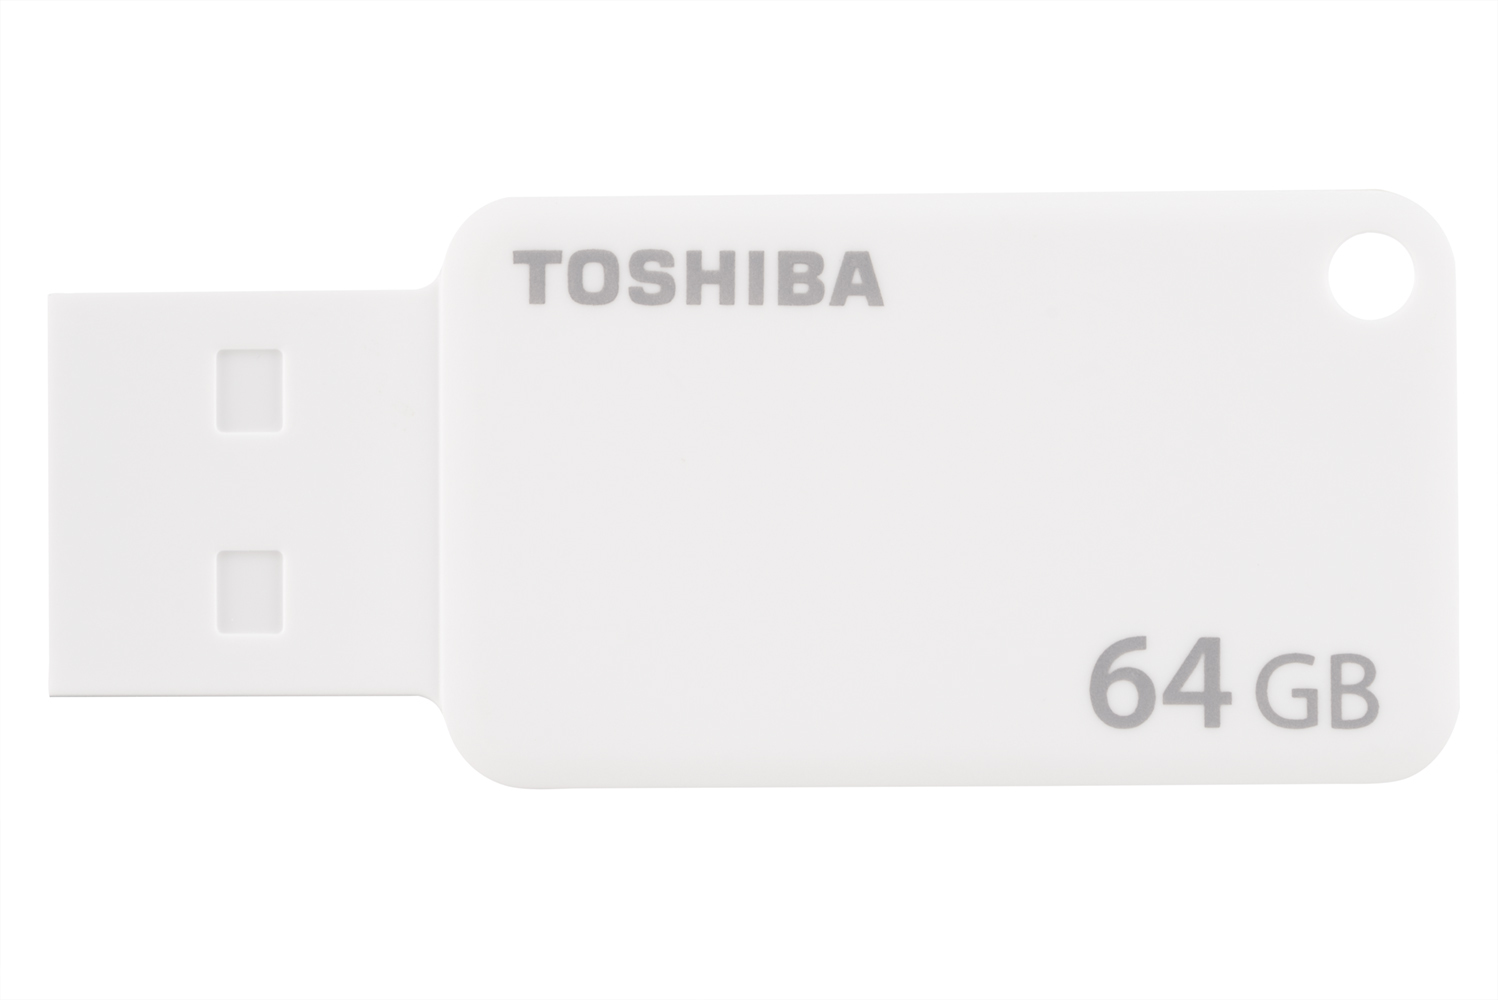 TOSHIBA TRANSMEMORY U303 64GB USB 3.0 (3.1 GEN 1) TYPE-A CONNECTOR WHITE FLASH DRIVE